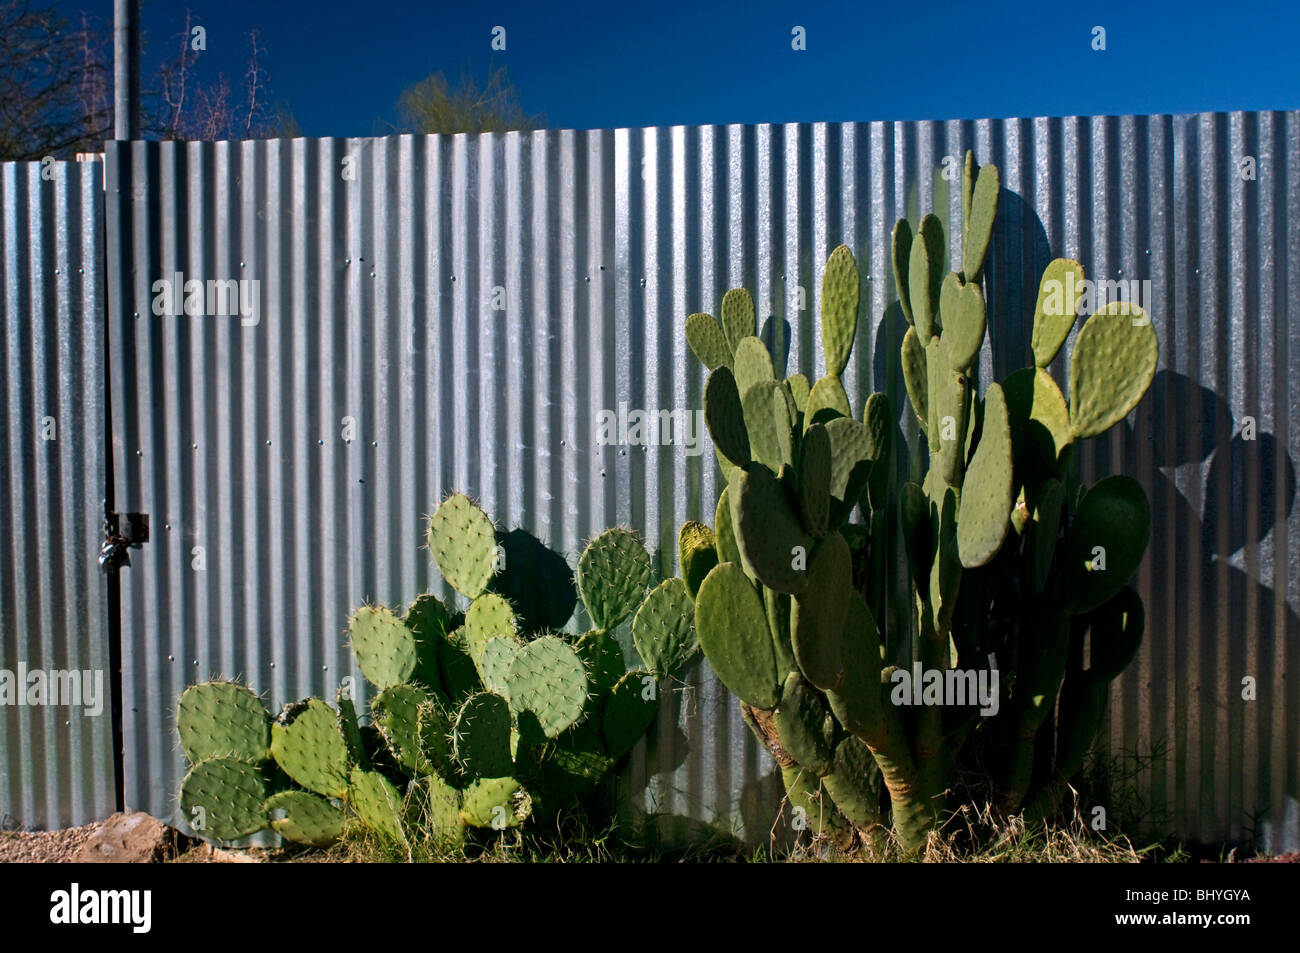 Two large beavertail cactus plants against galvanized steel fence in urban environment in Tucson, AZ - Stock Image